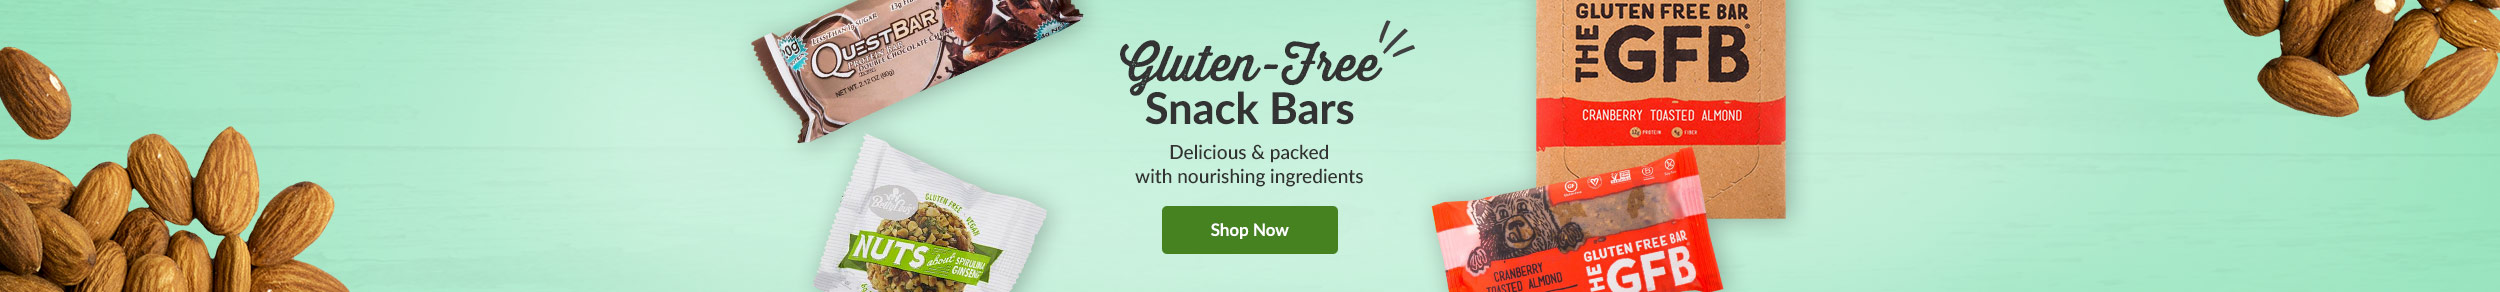 https://i3.pureformulas.net/images/static/Gluten-Free-Snack-Bars_slide3_062218.jpg